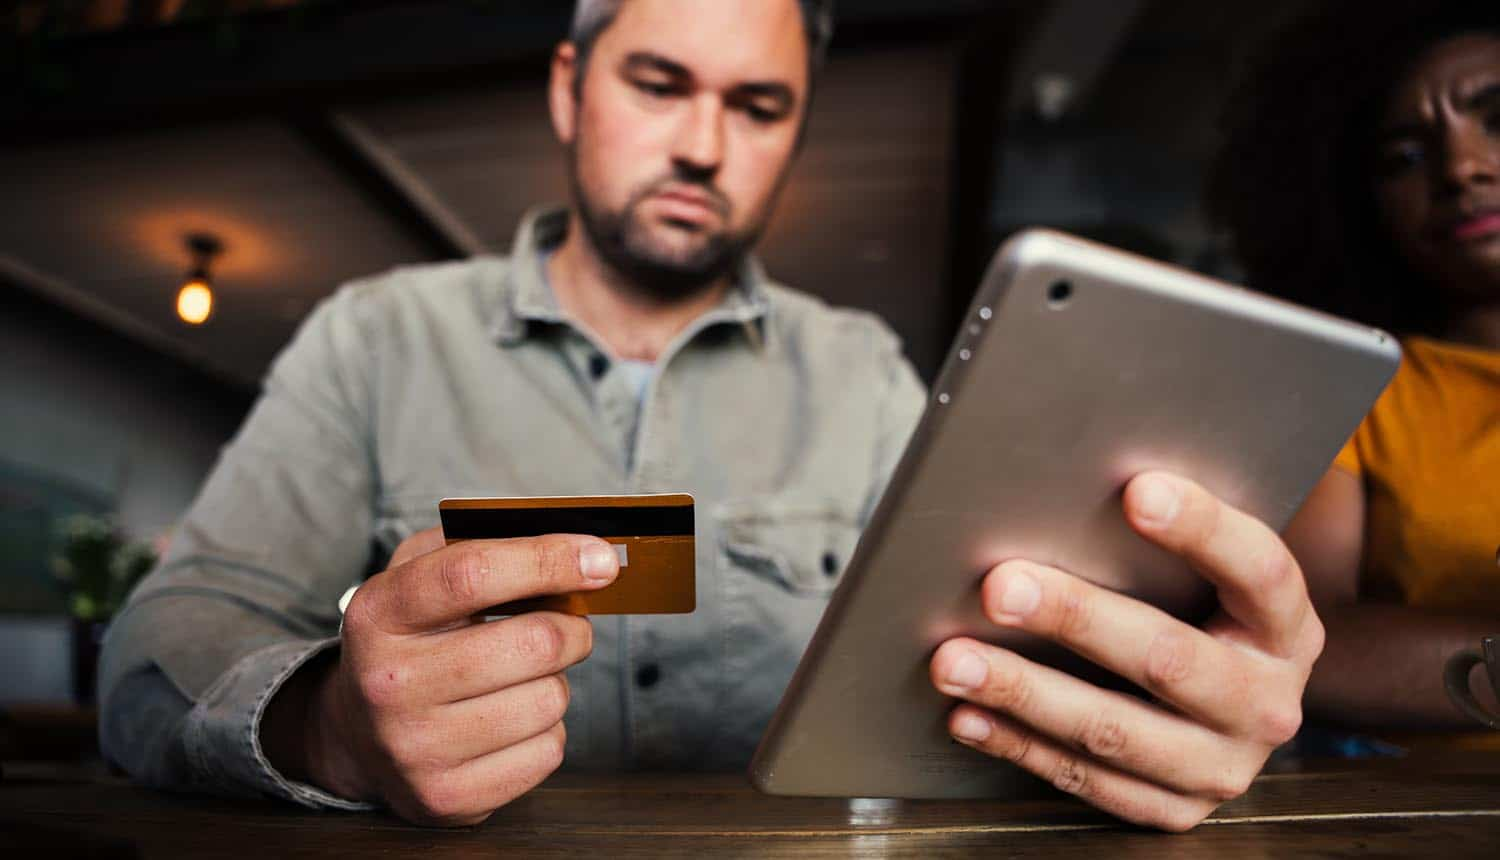 Man in coffee shop about to make an online payment with credit card